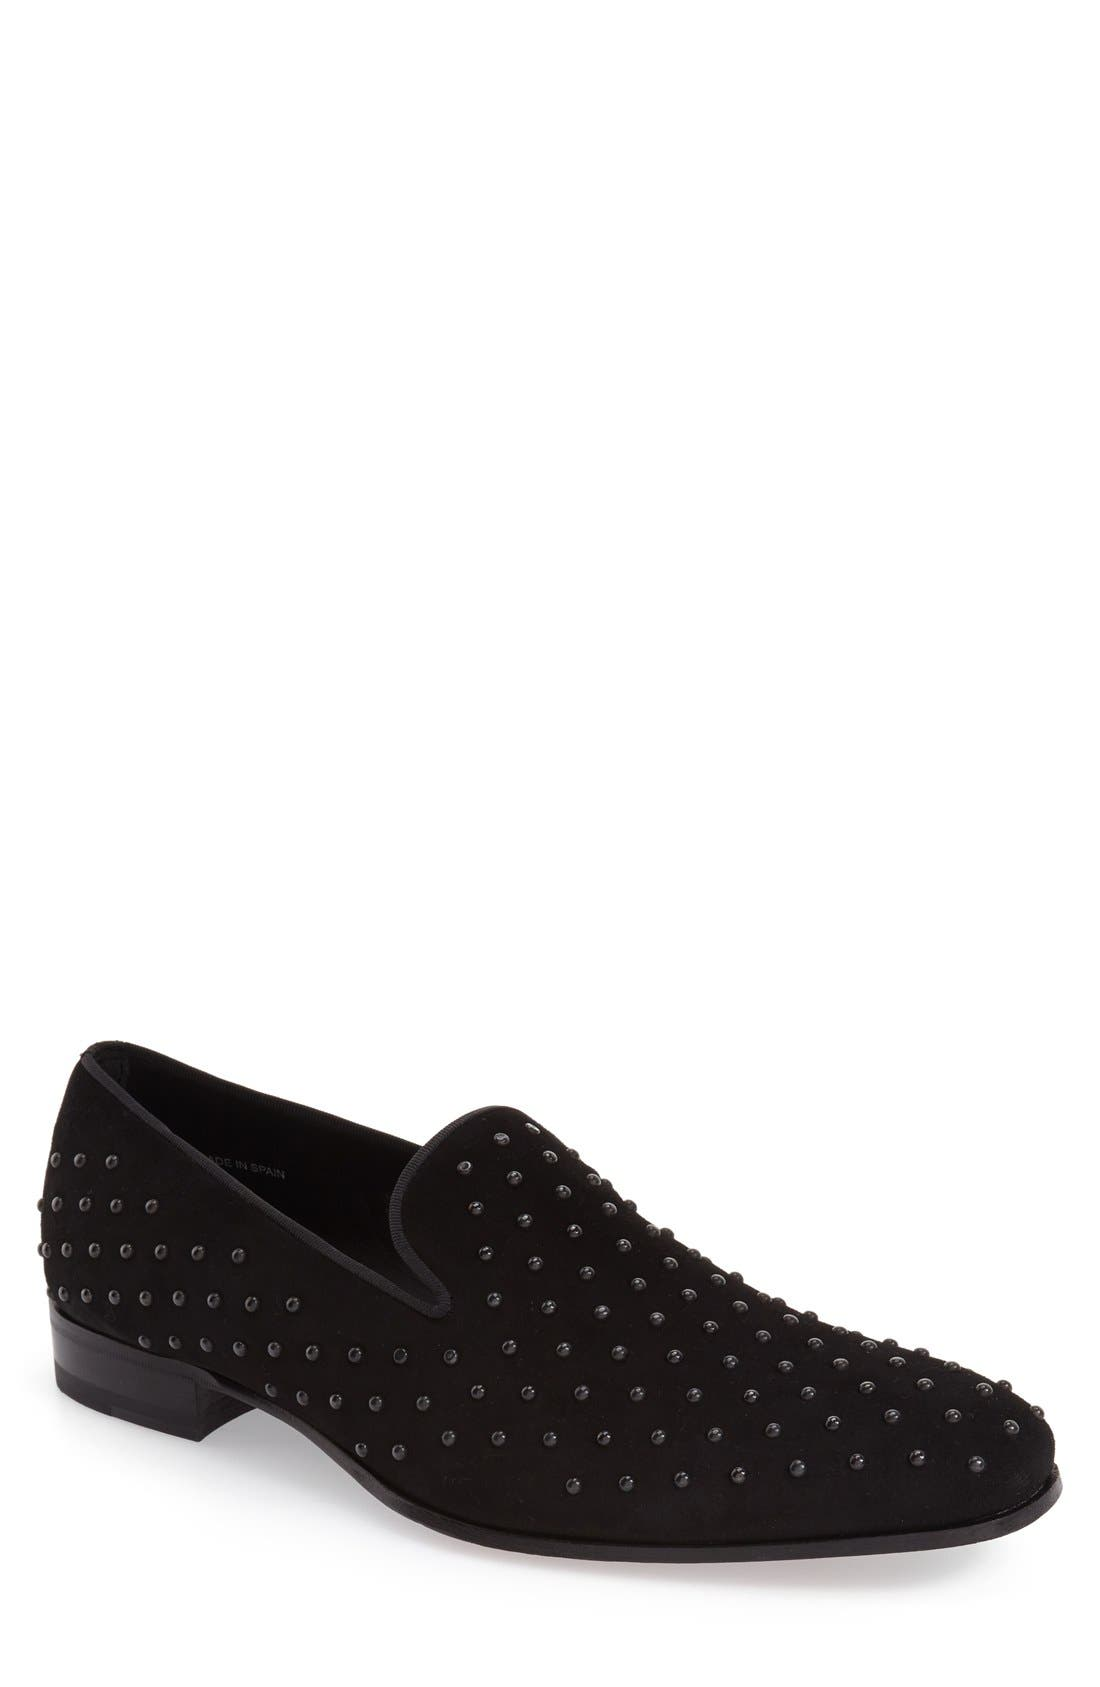 'Batiste' Studded Venetian Loafer,                         Main,                         color, BLACK PRINTED FABRC